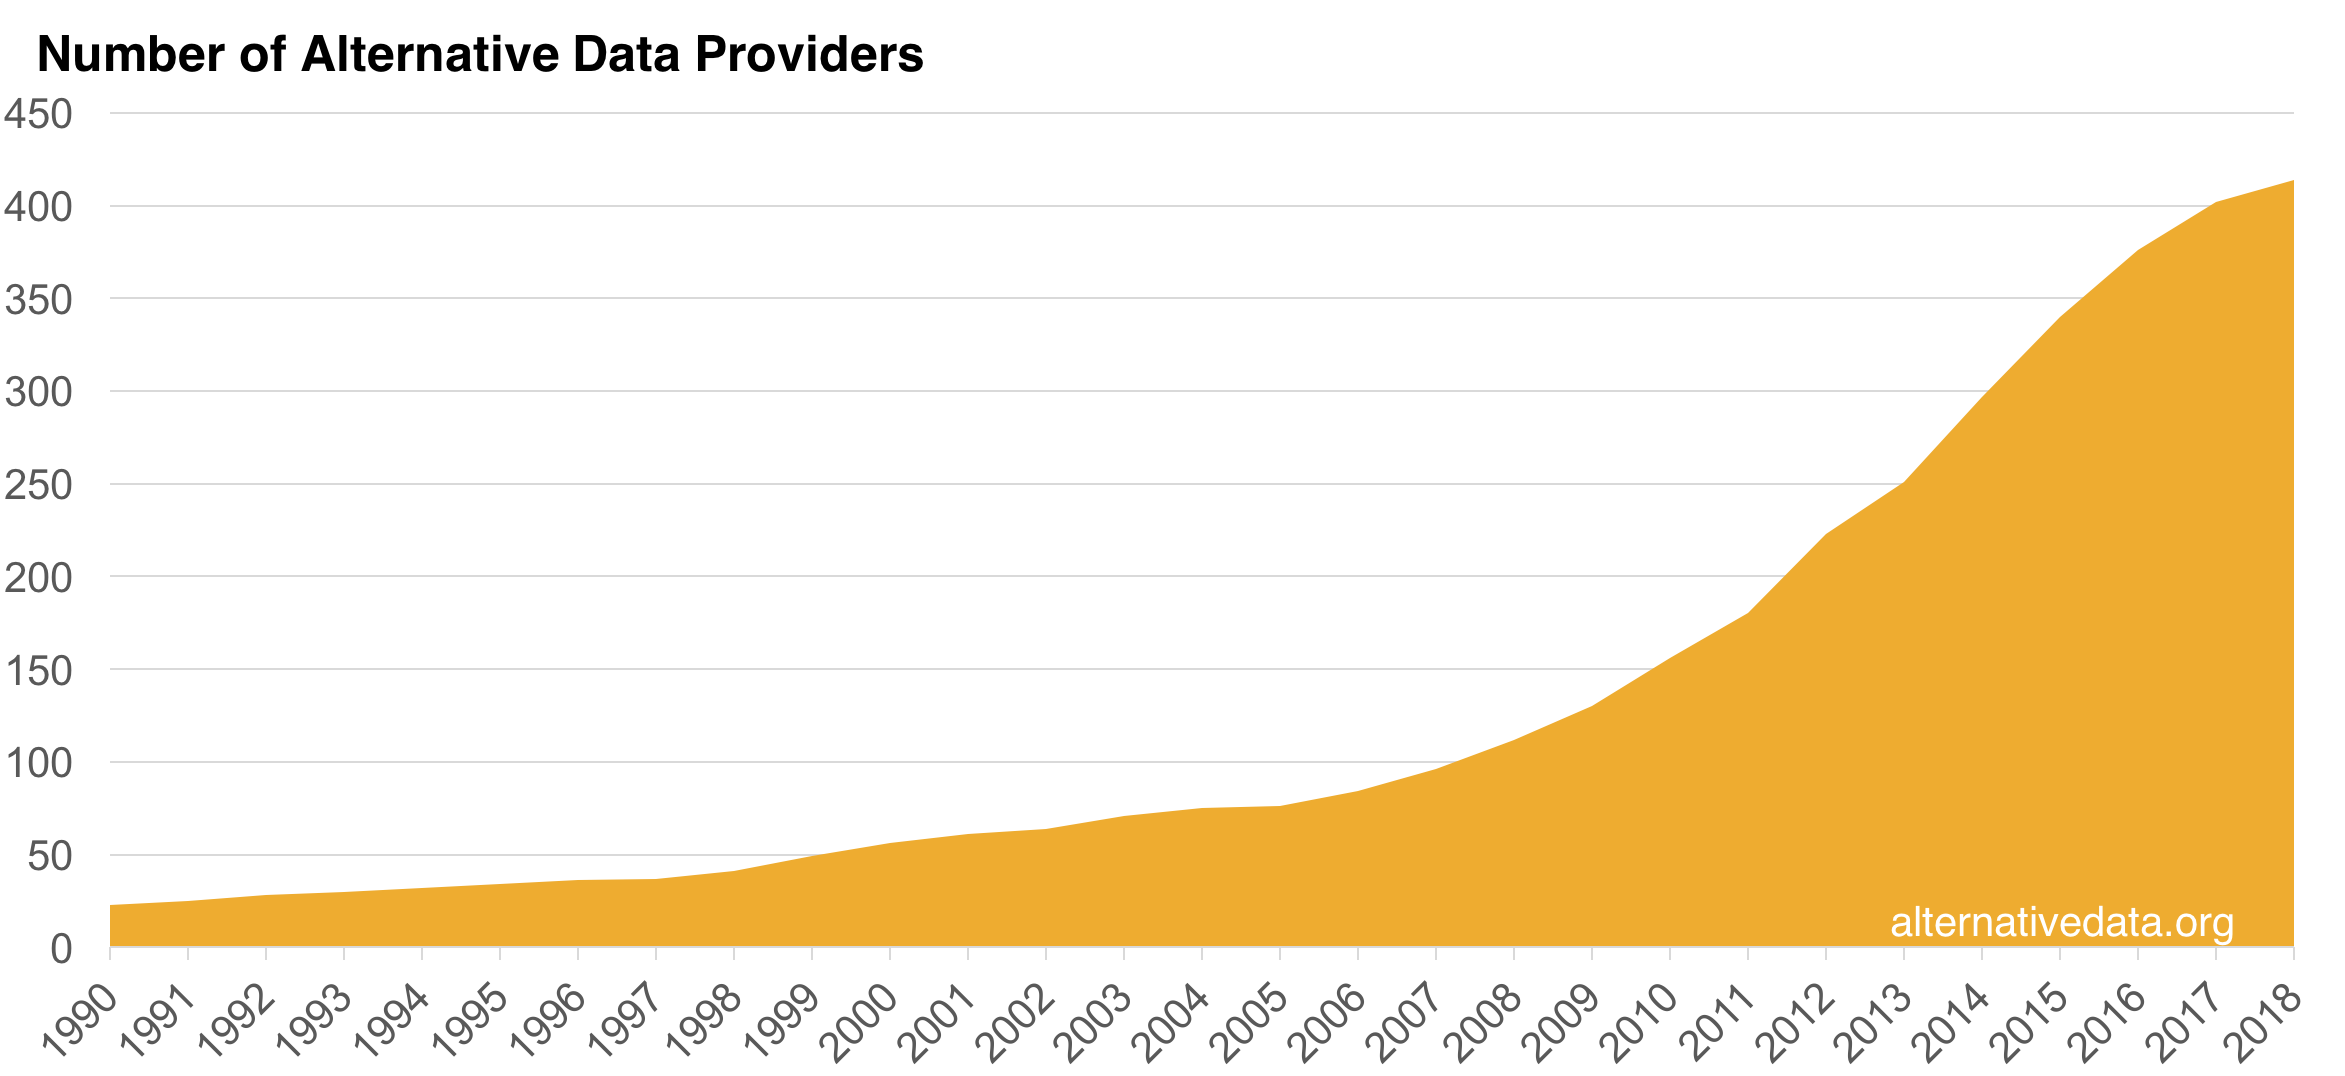 There are more than 400 recognized alternative data providers today